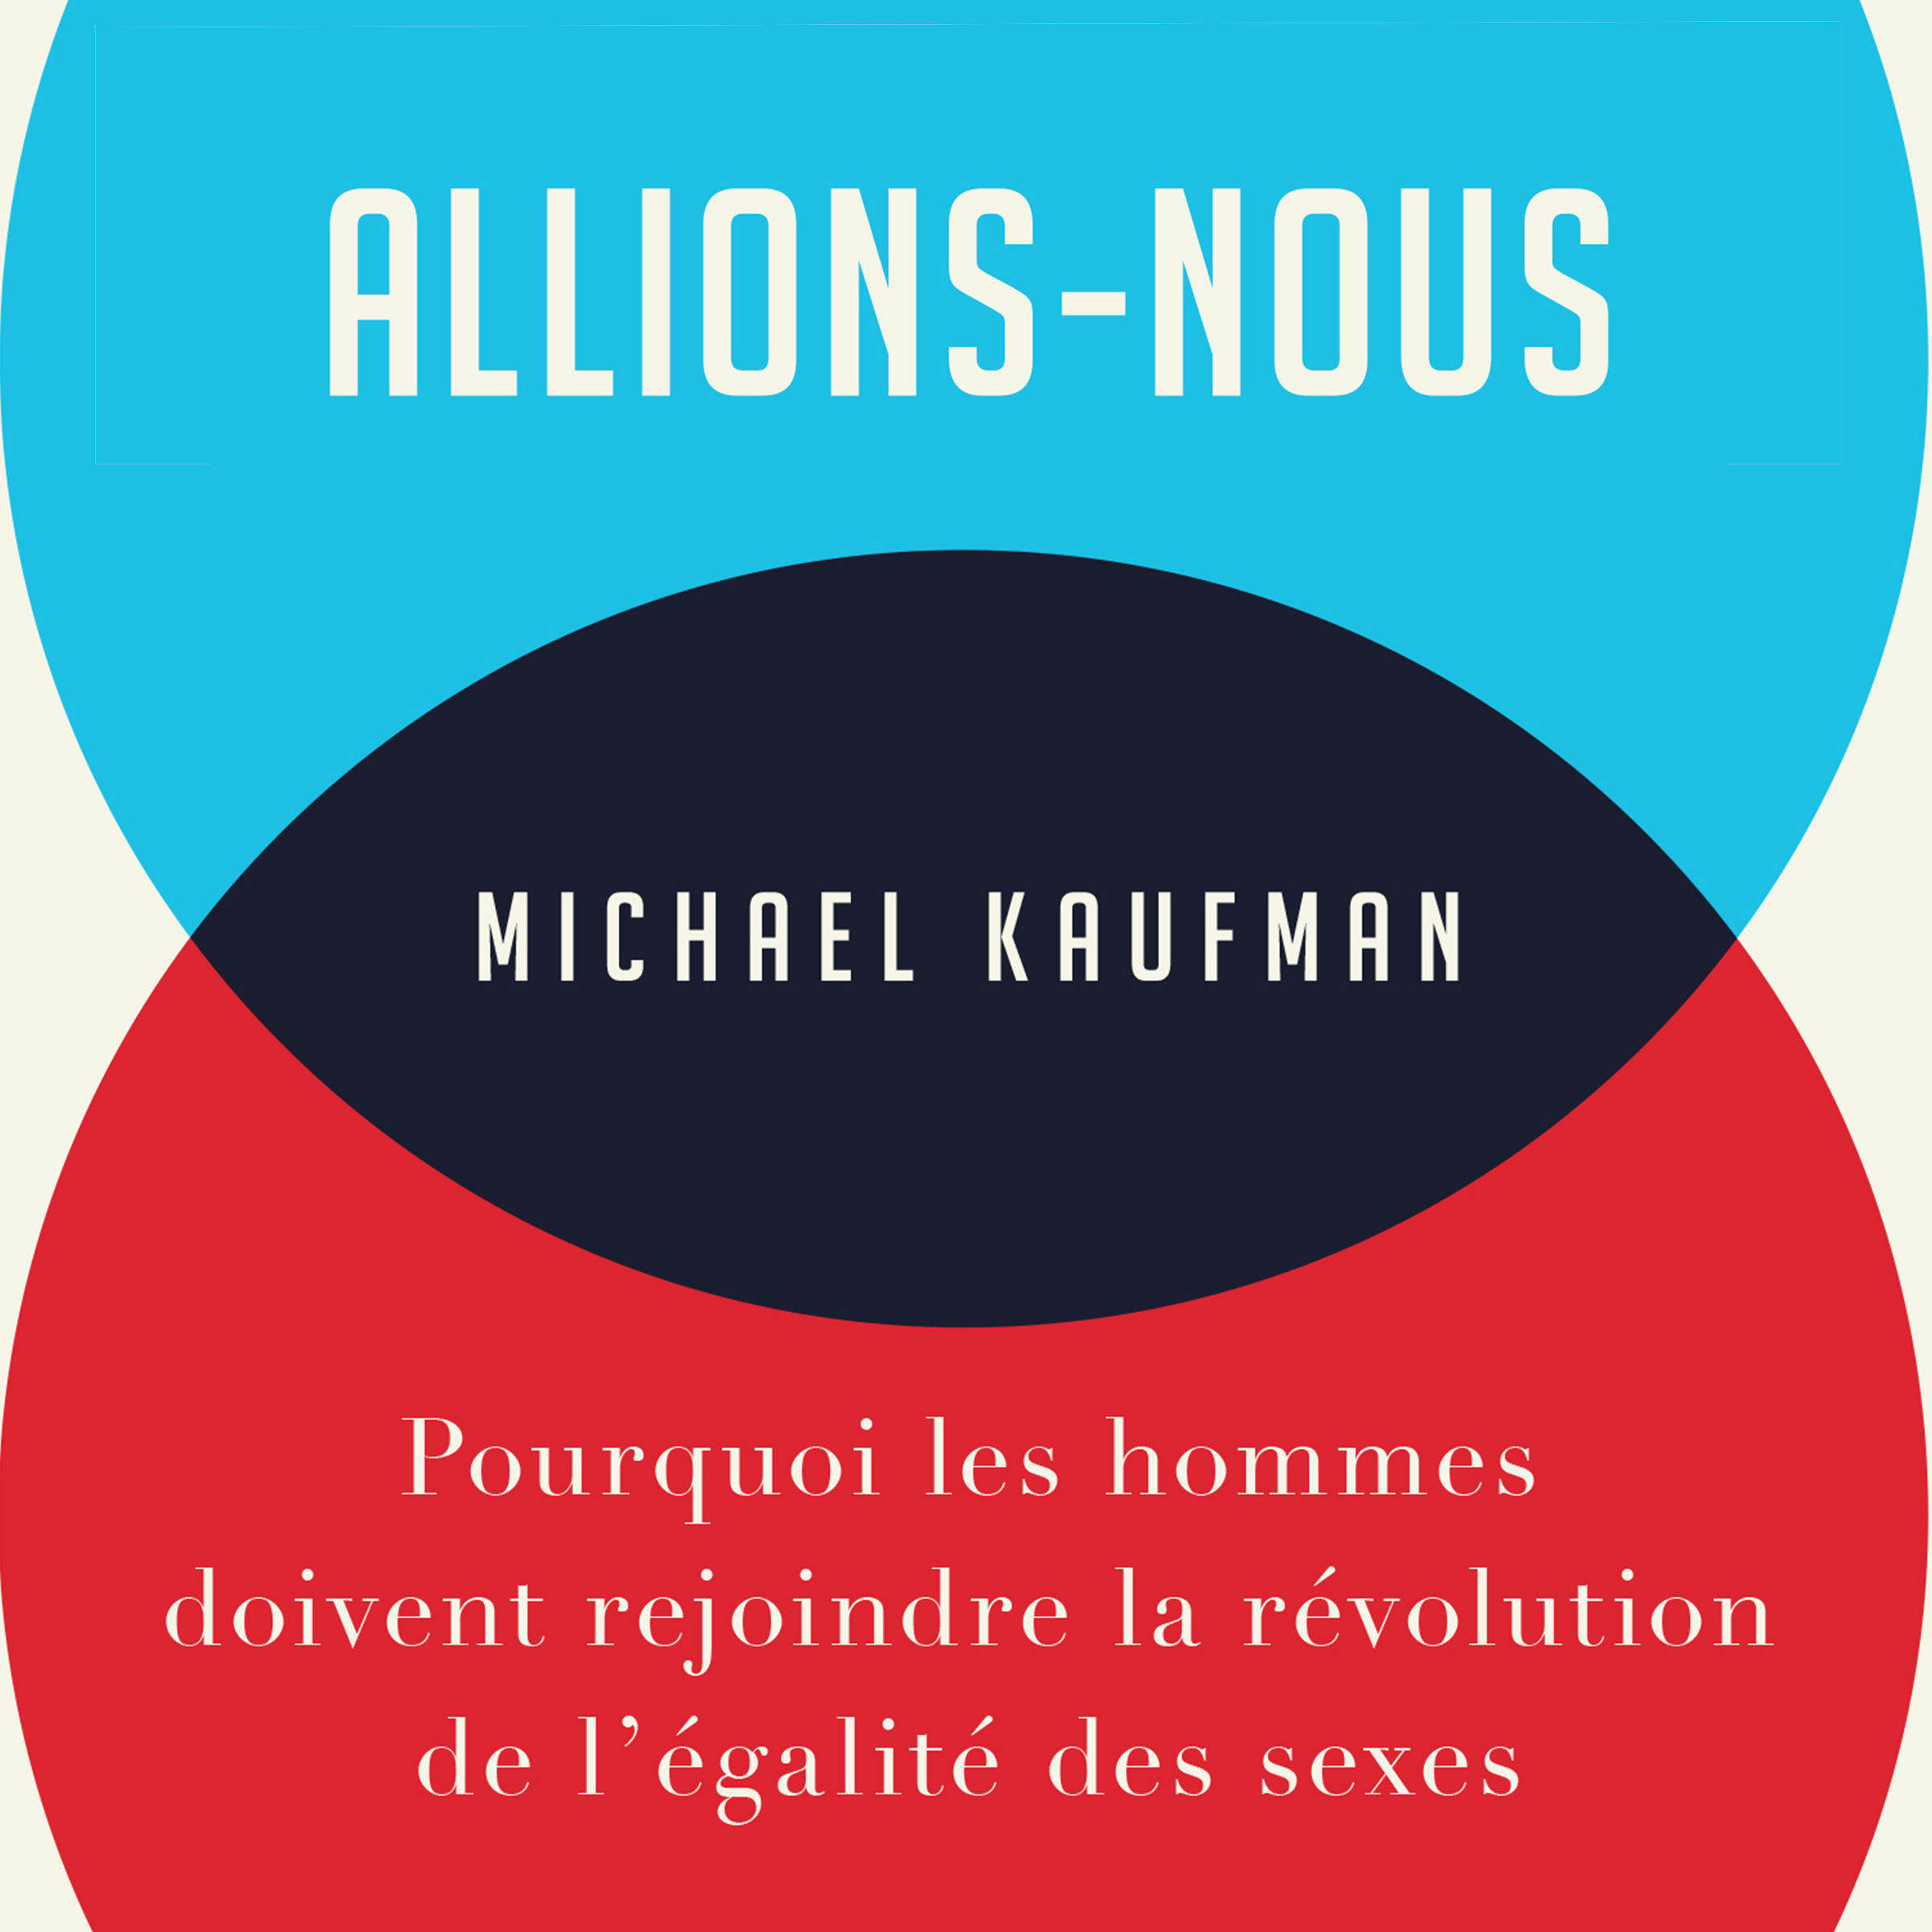 Allions-nous - Michael Kaufman